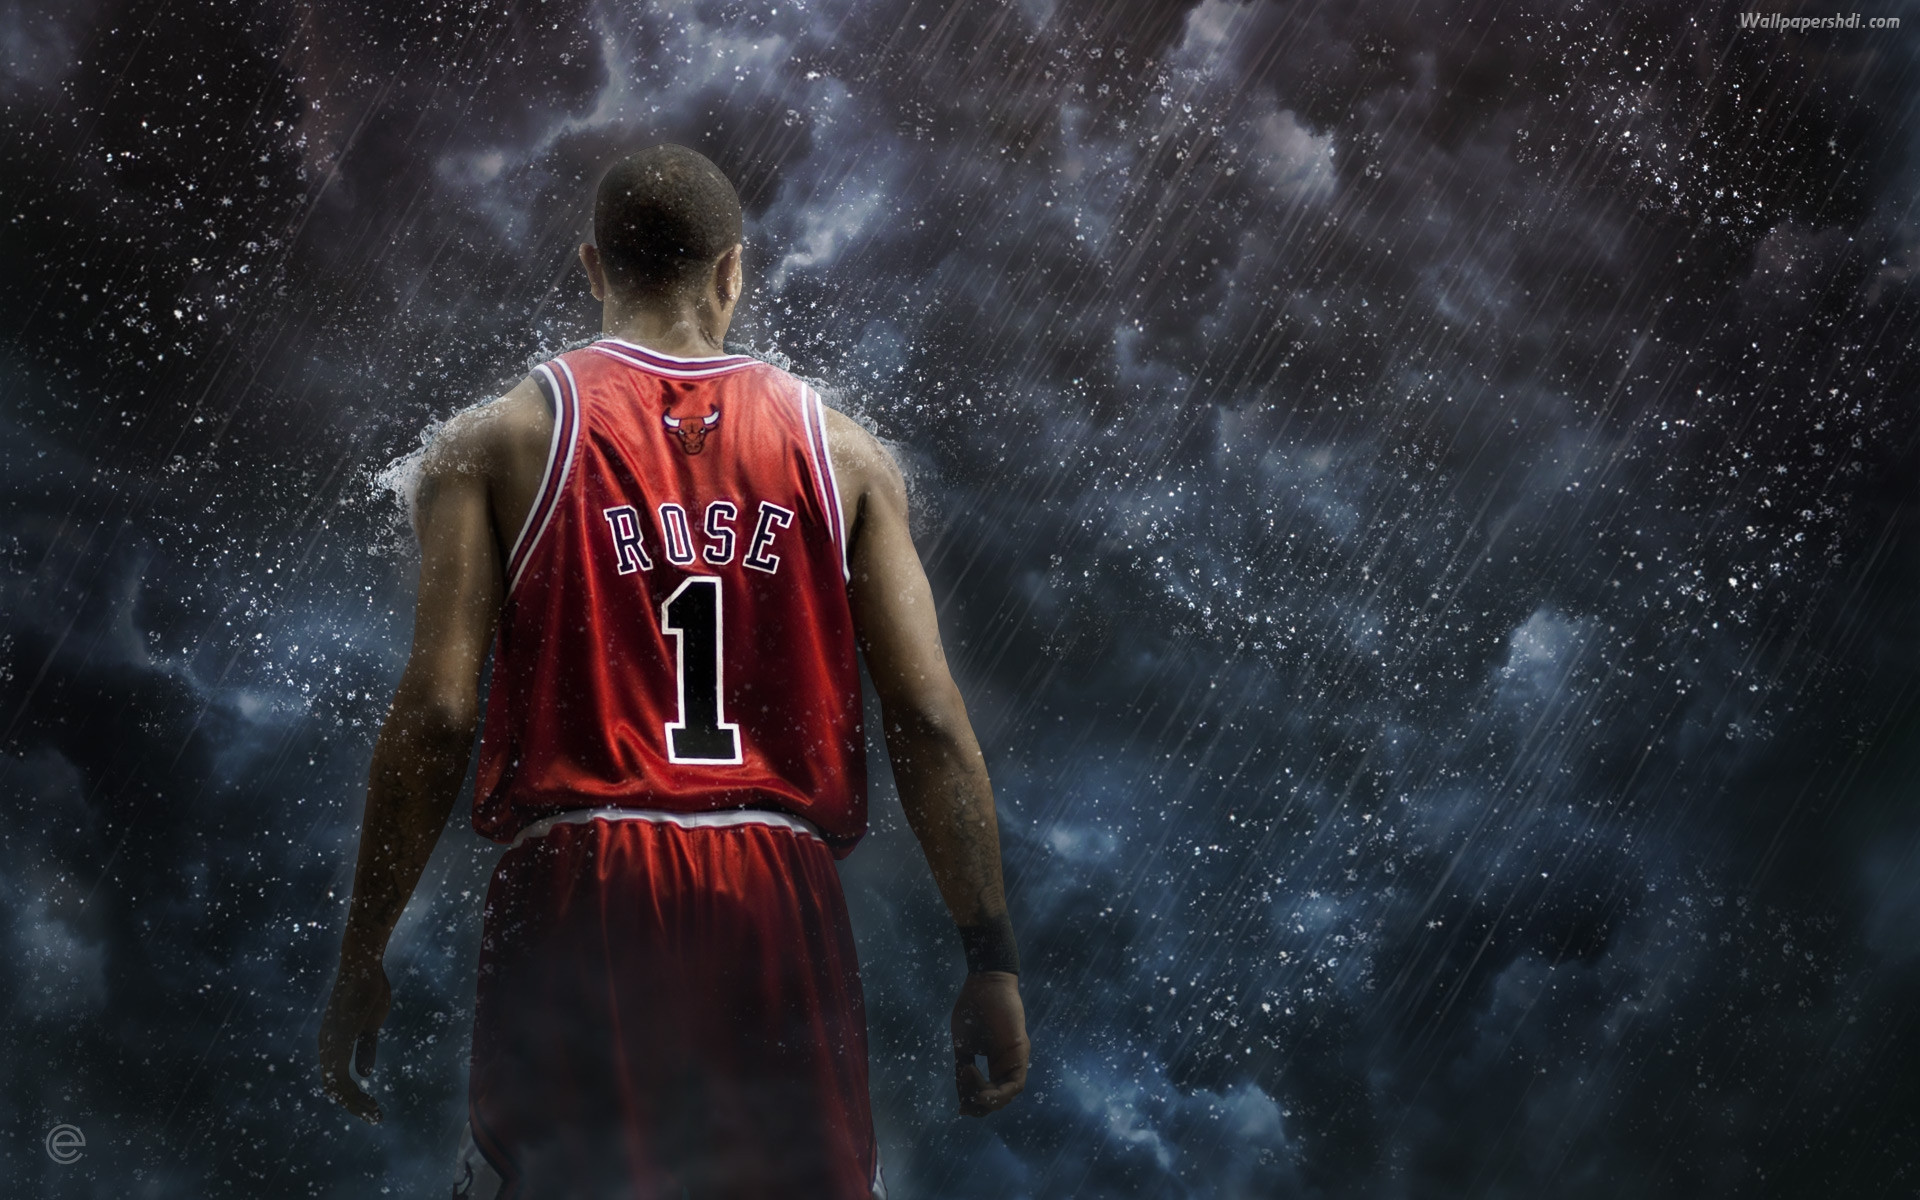 Derrick Rose Wallpapers High Resolution and Quality Download 1920x1200